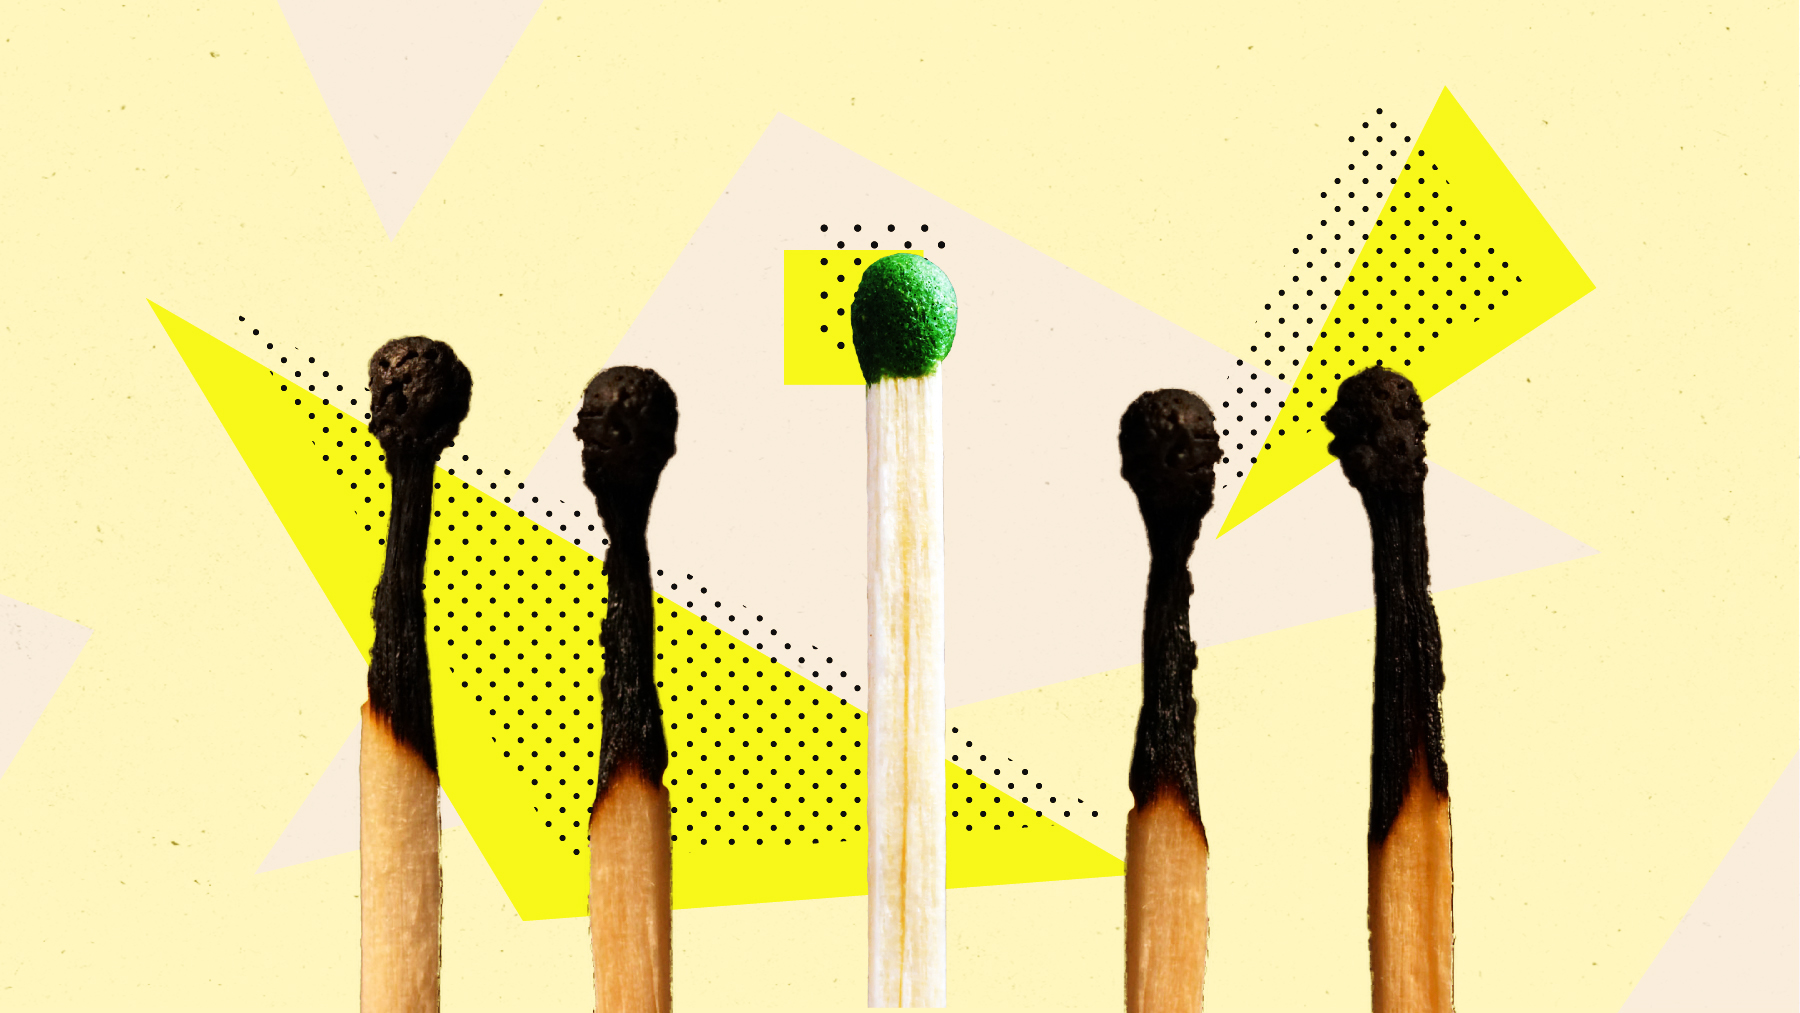 Photoillustration of four burnt matches and one unlit one.